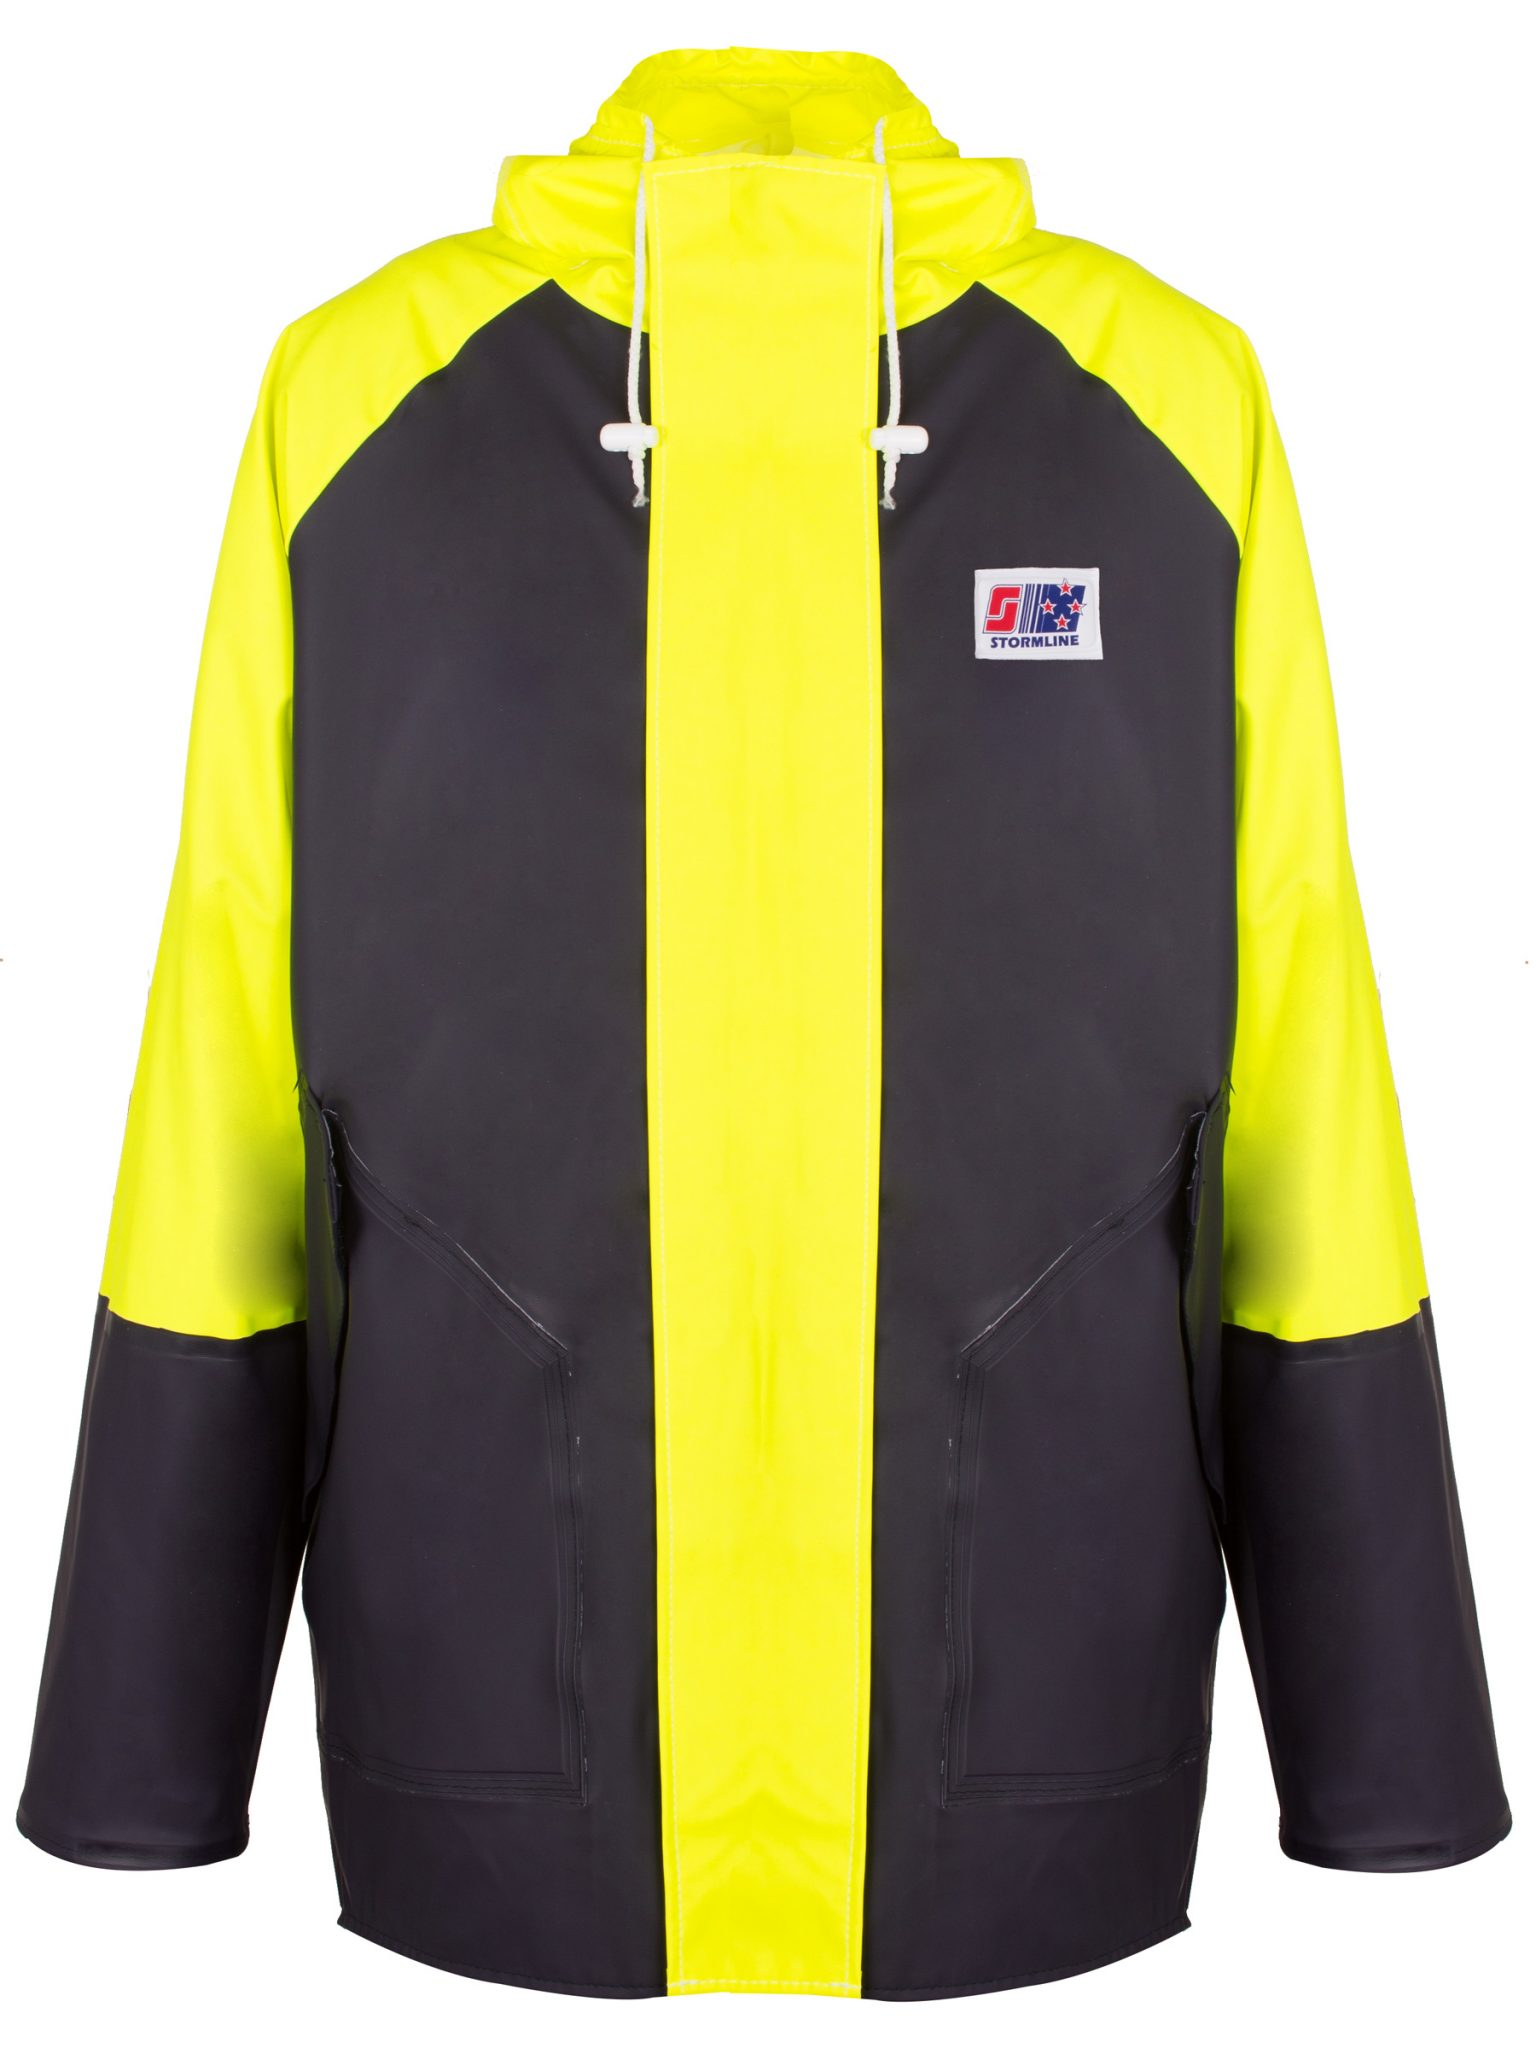 Stormtex-Air 203 raglan wet weather jacket